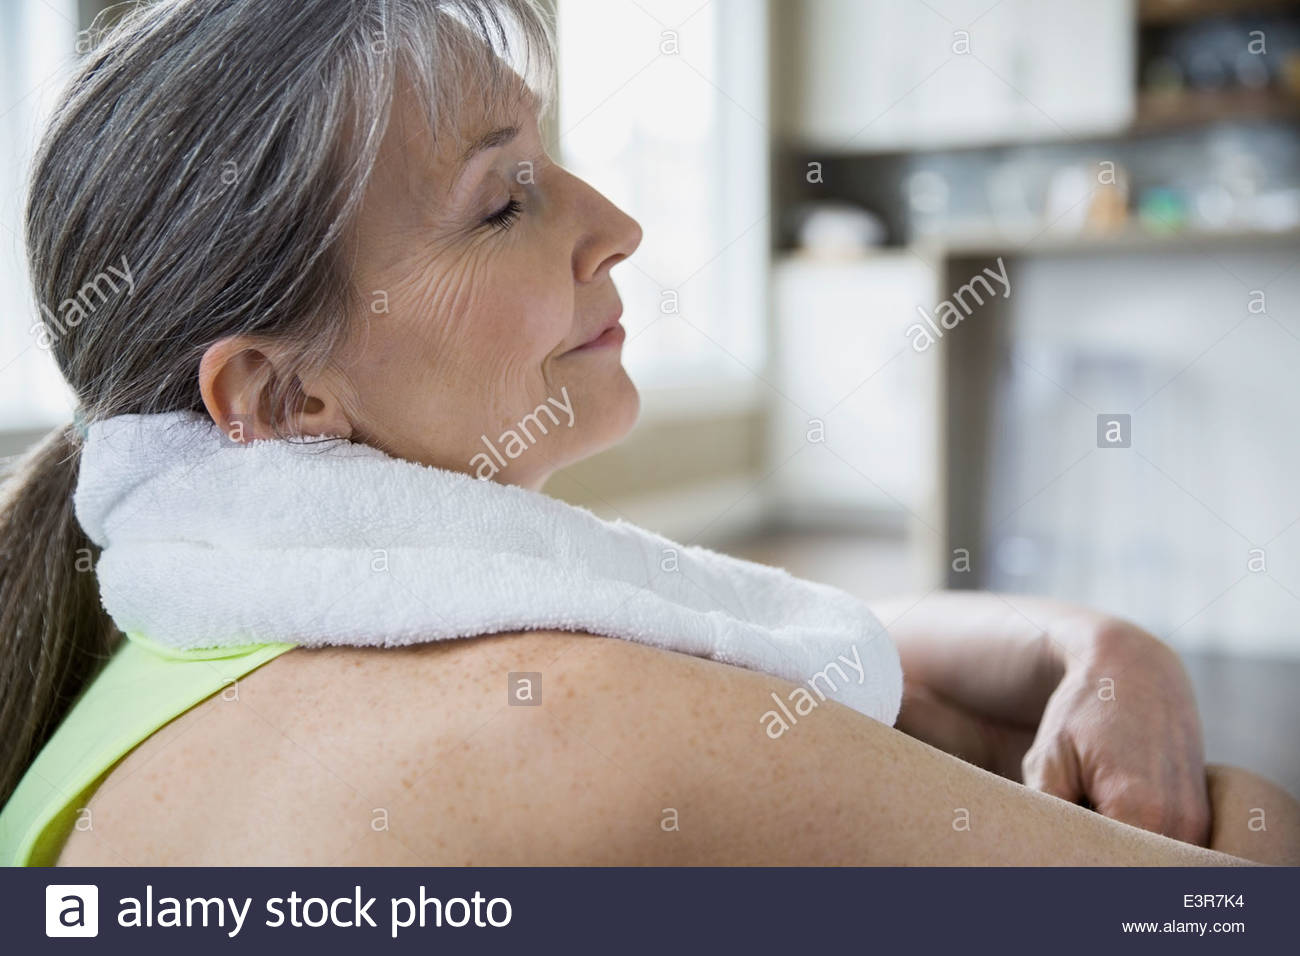 Close up of relaxed woman Photo Stock